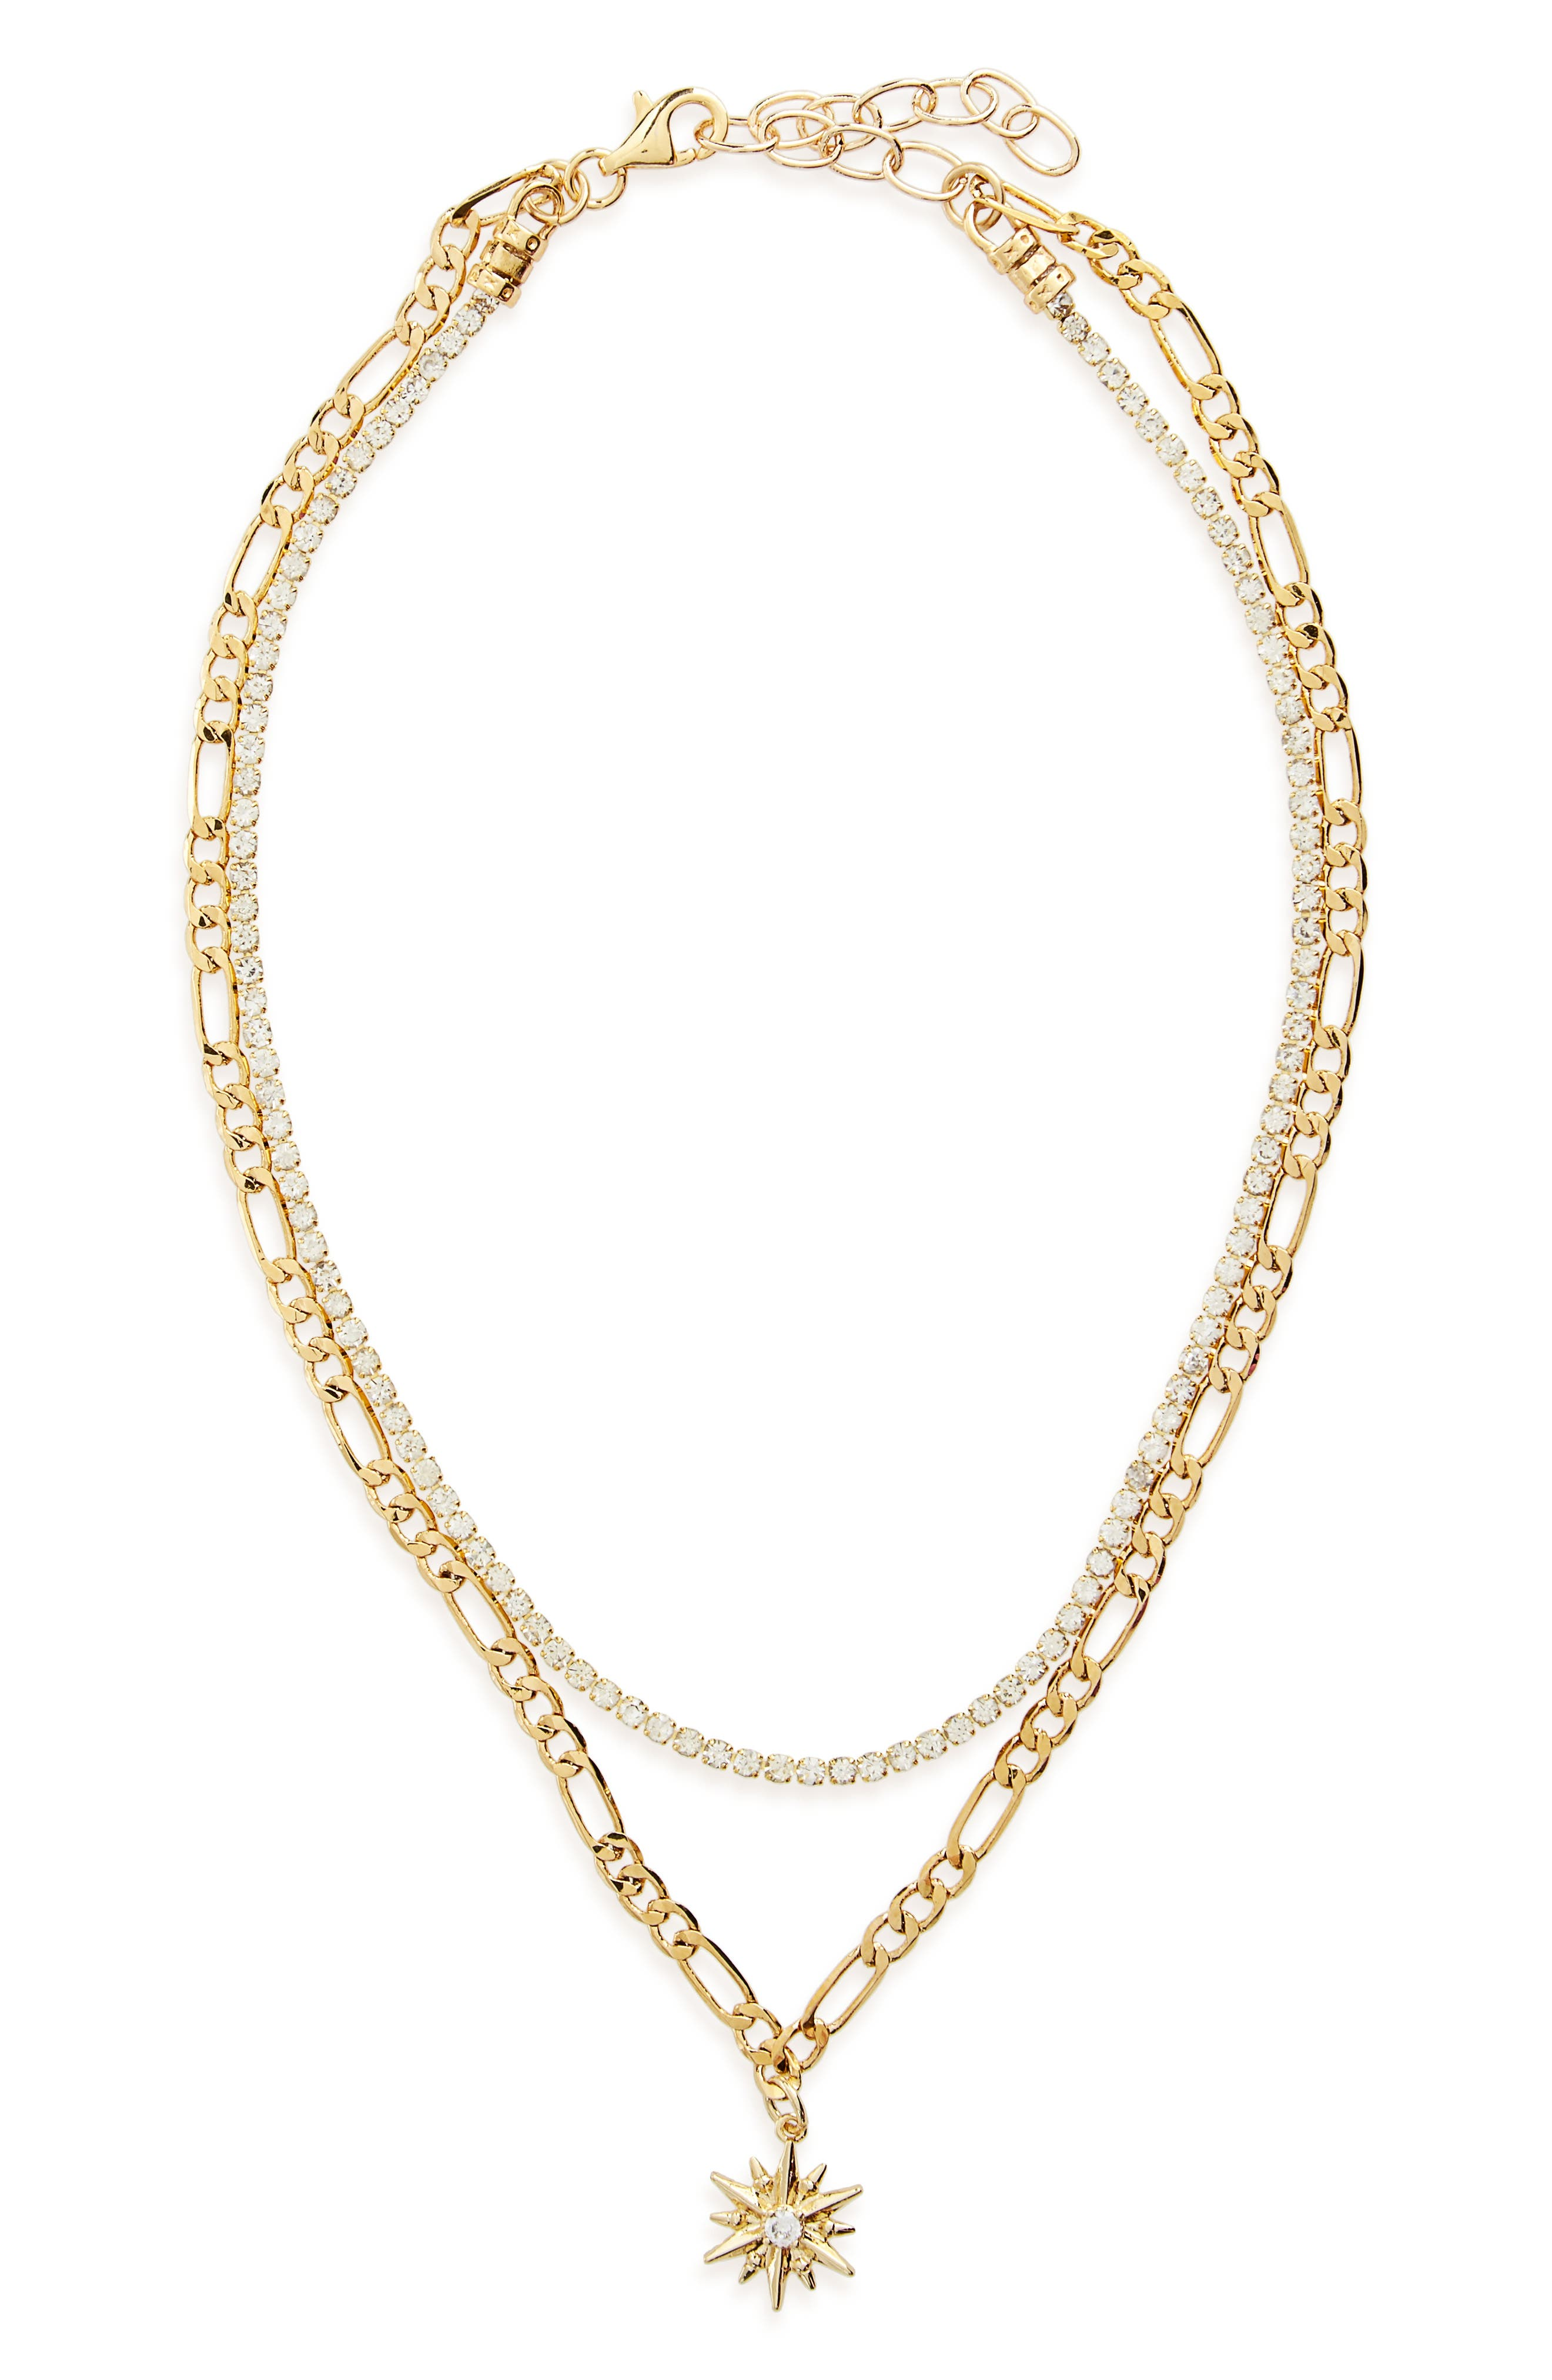 FRASIER STERLING What's Luv Layered Necklace